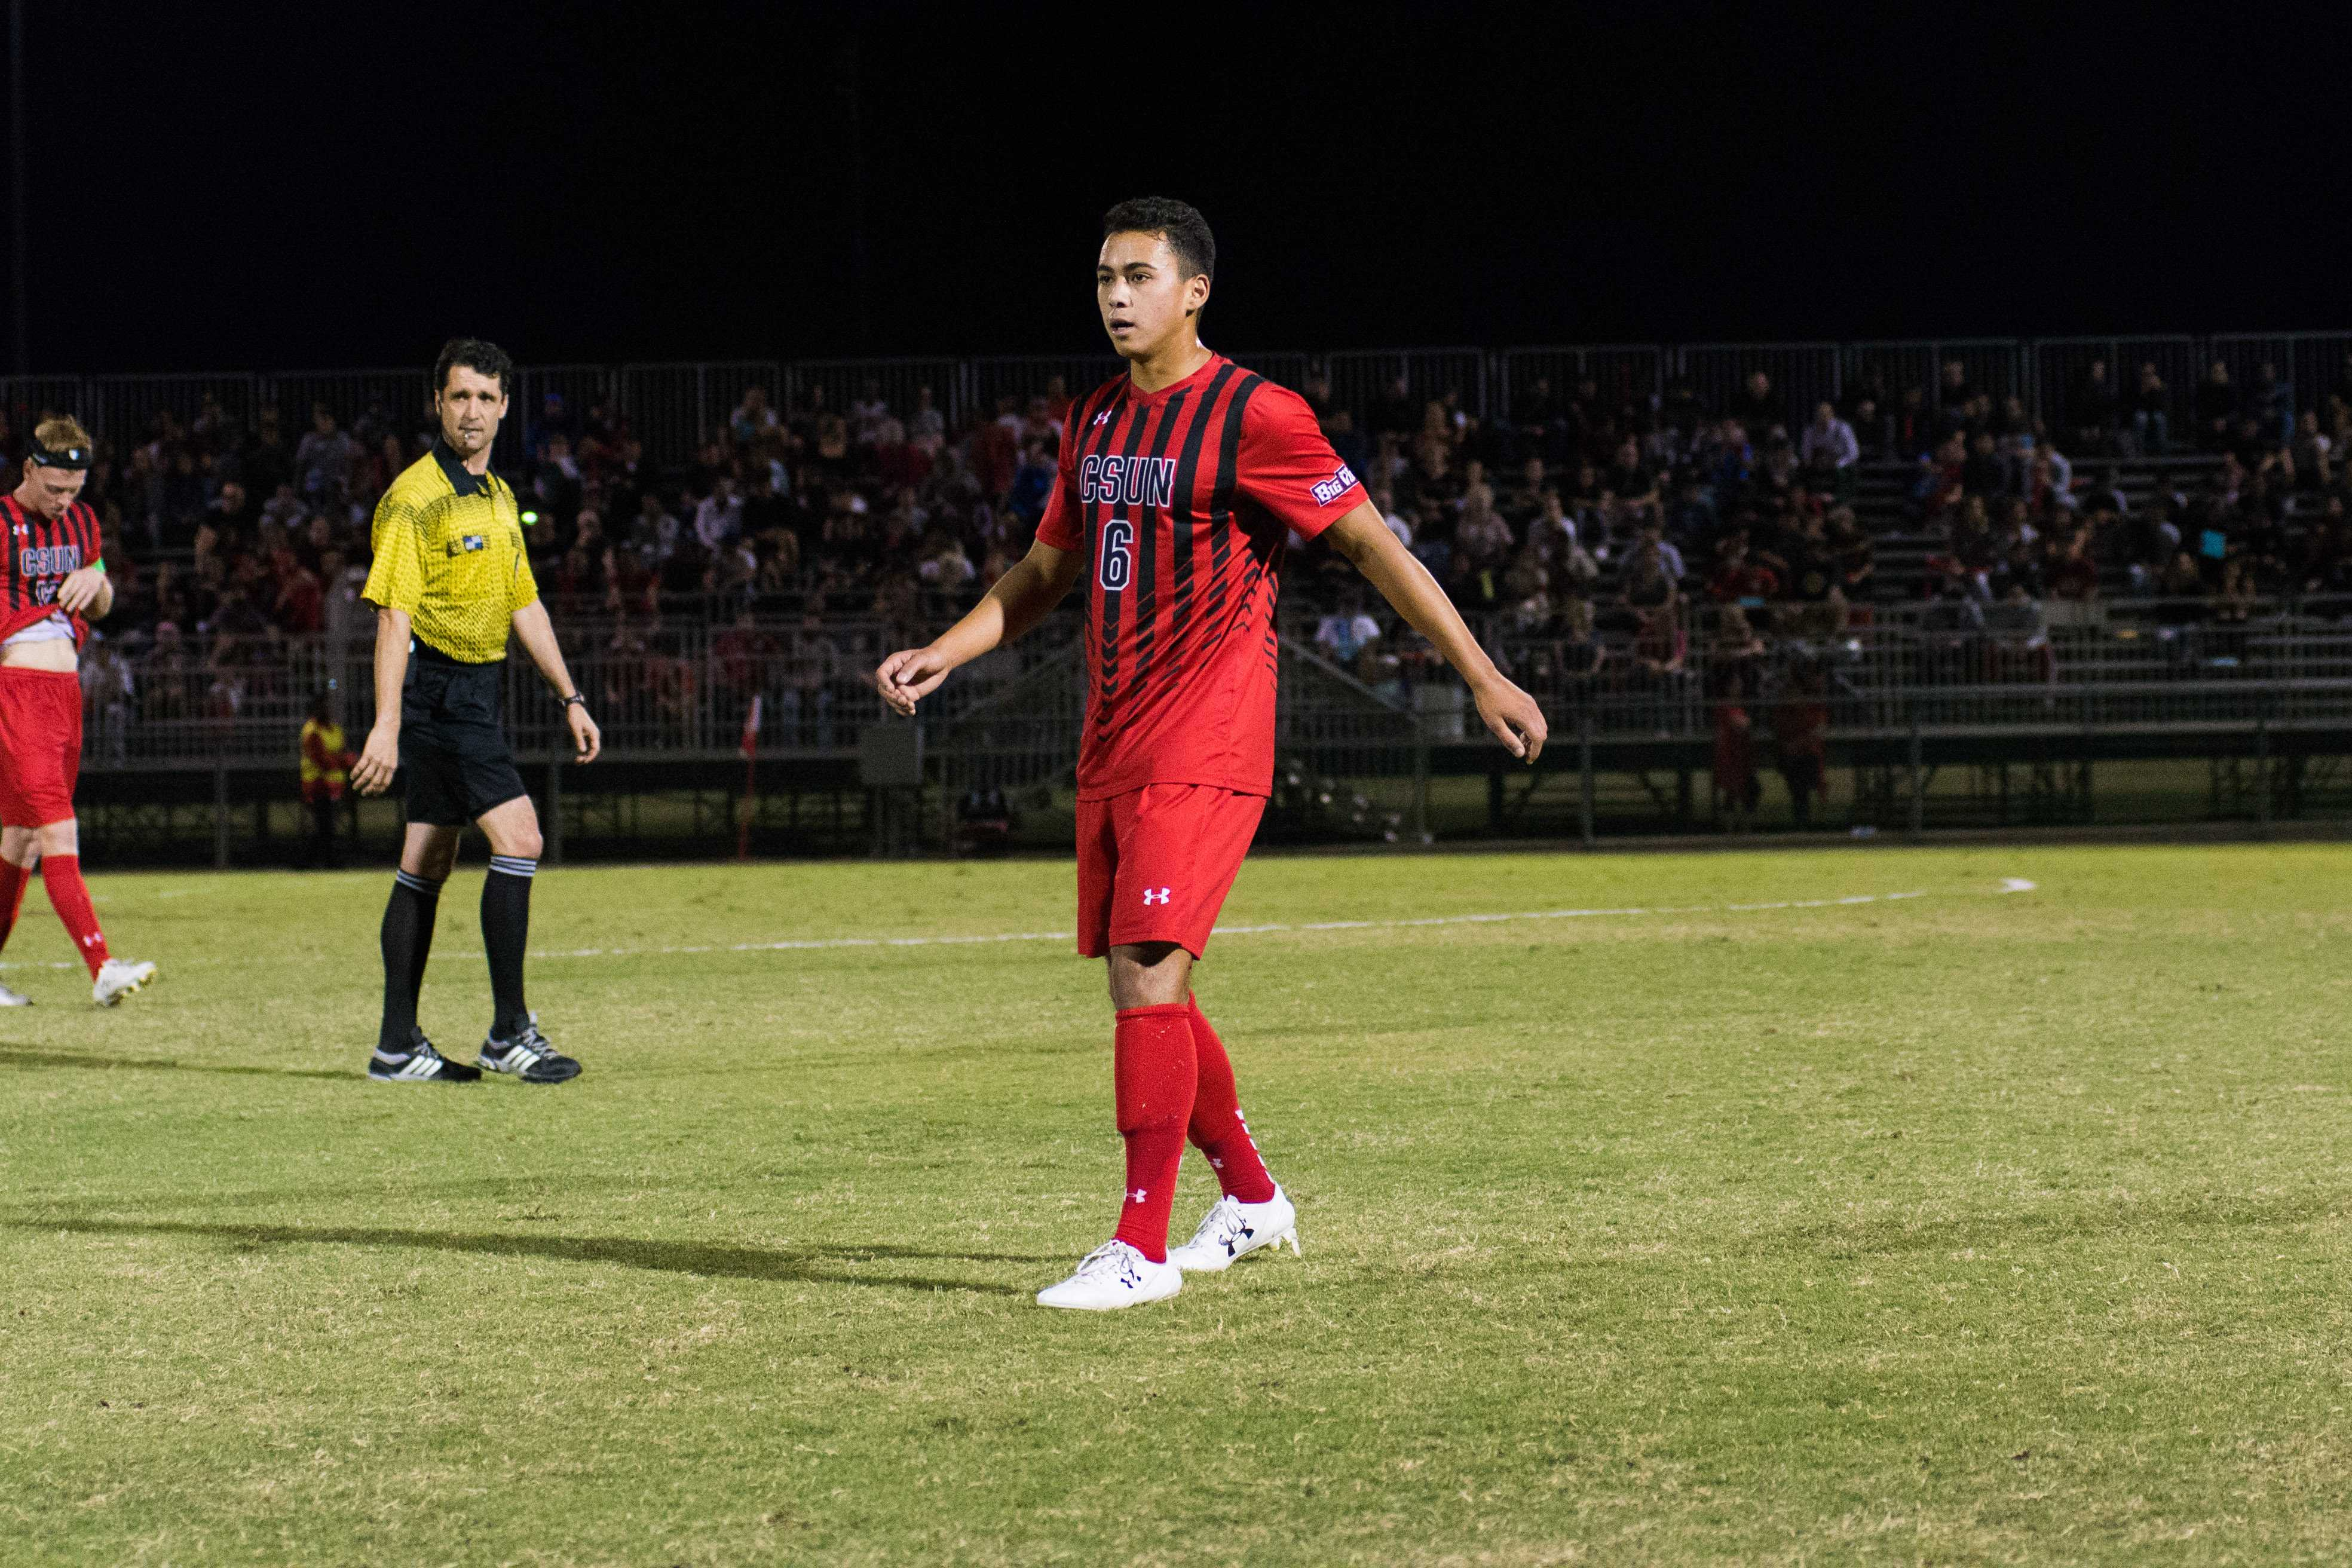 CSUN soccer player watches the field